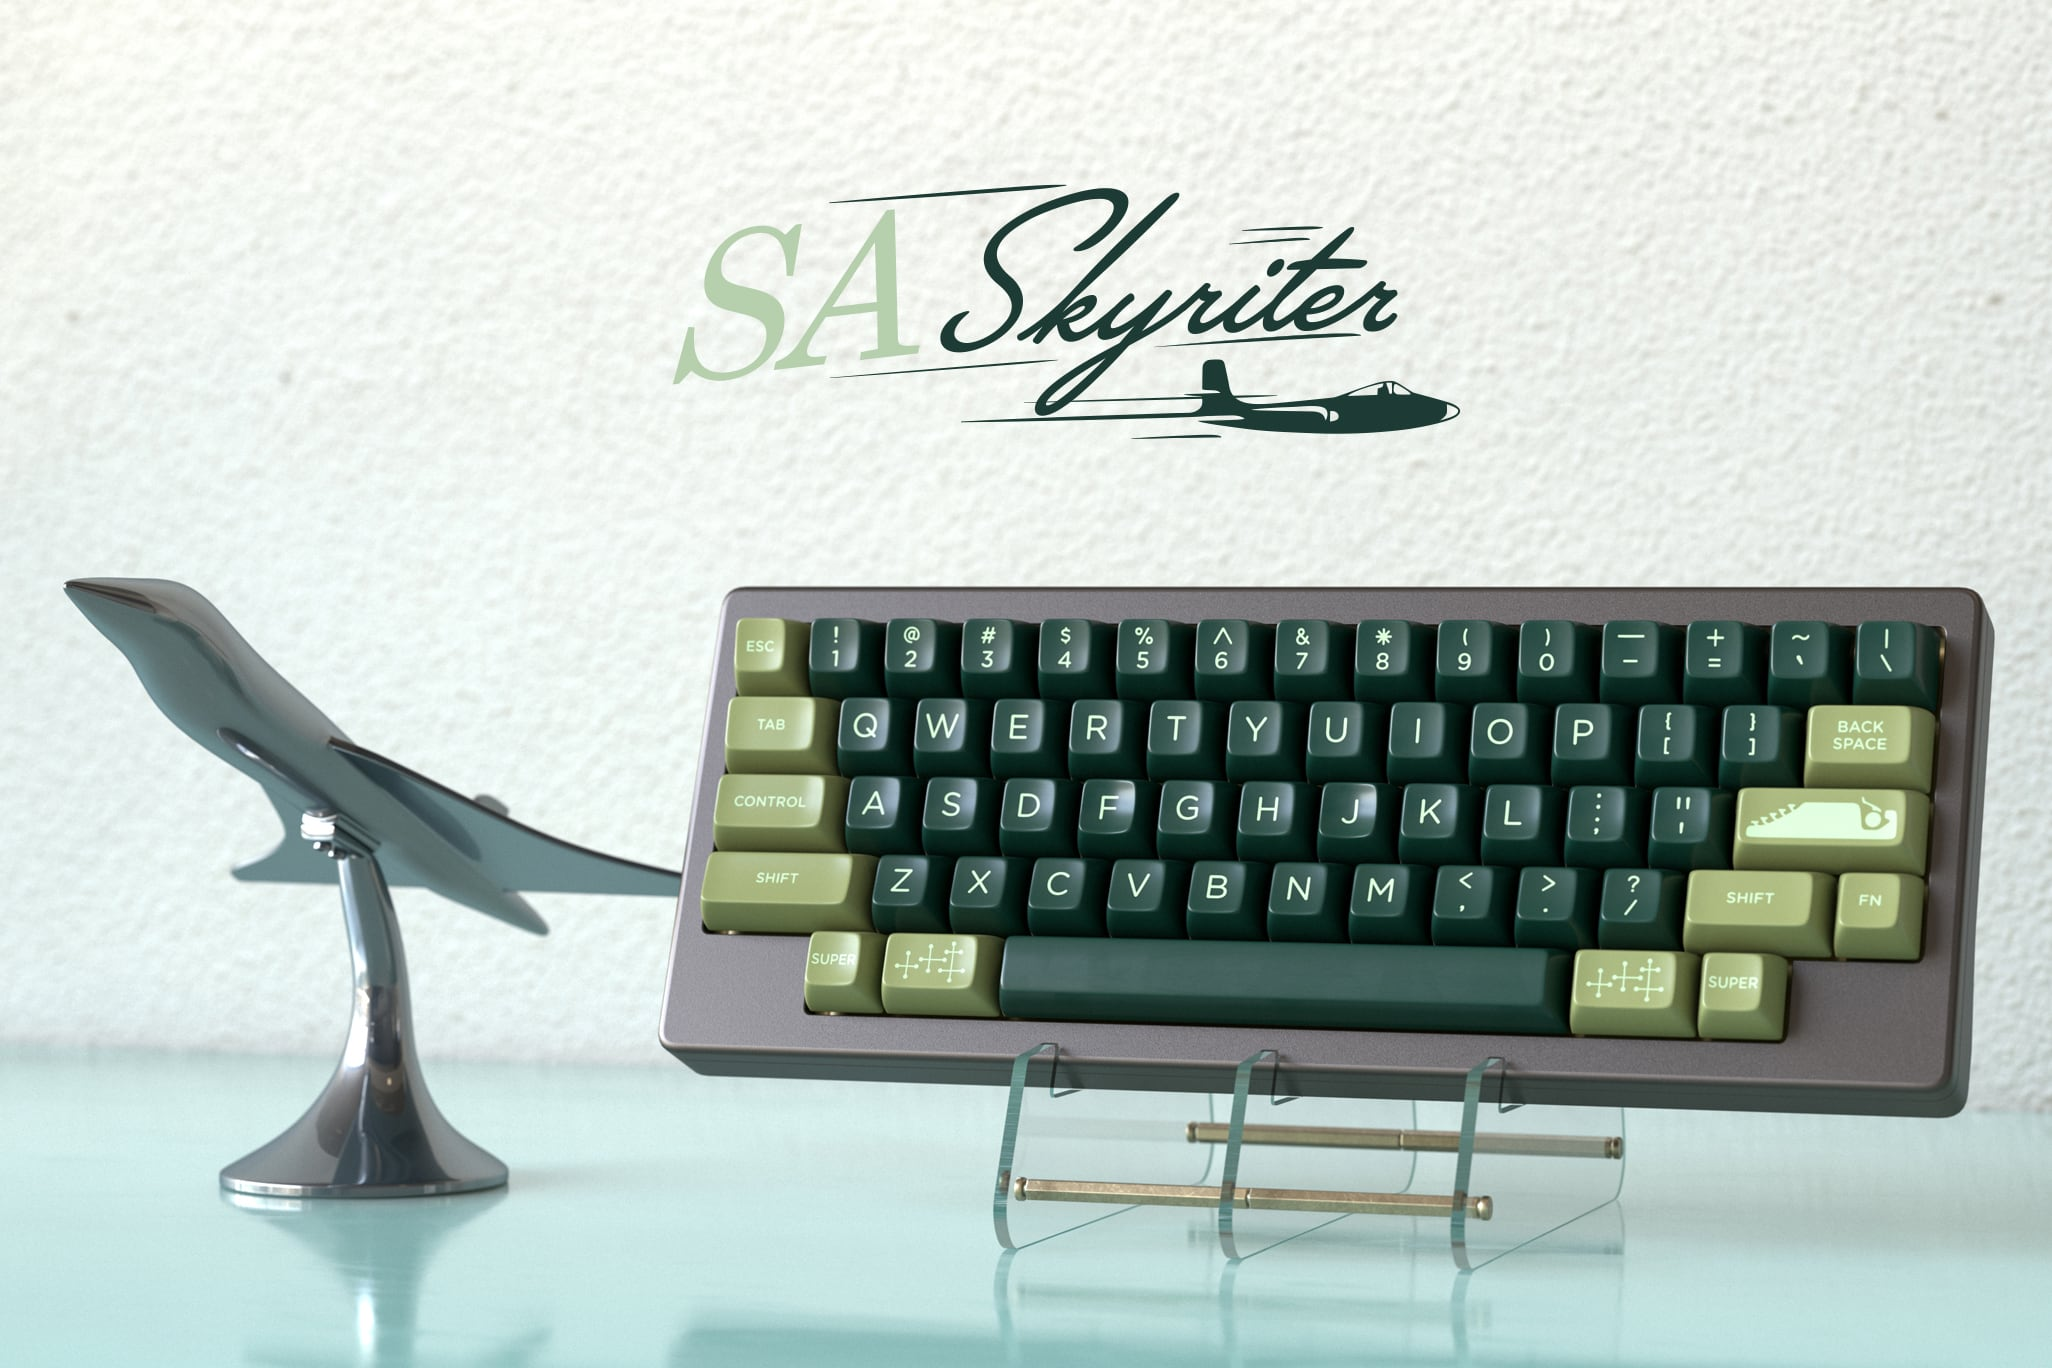 SA Skyriter on TX-60